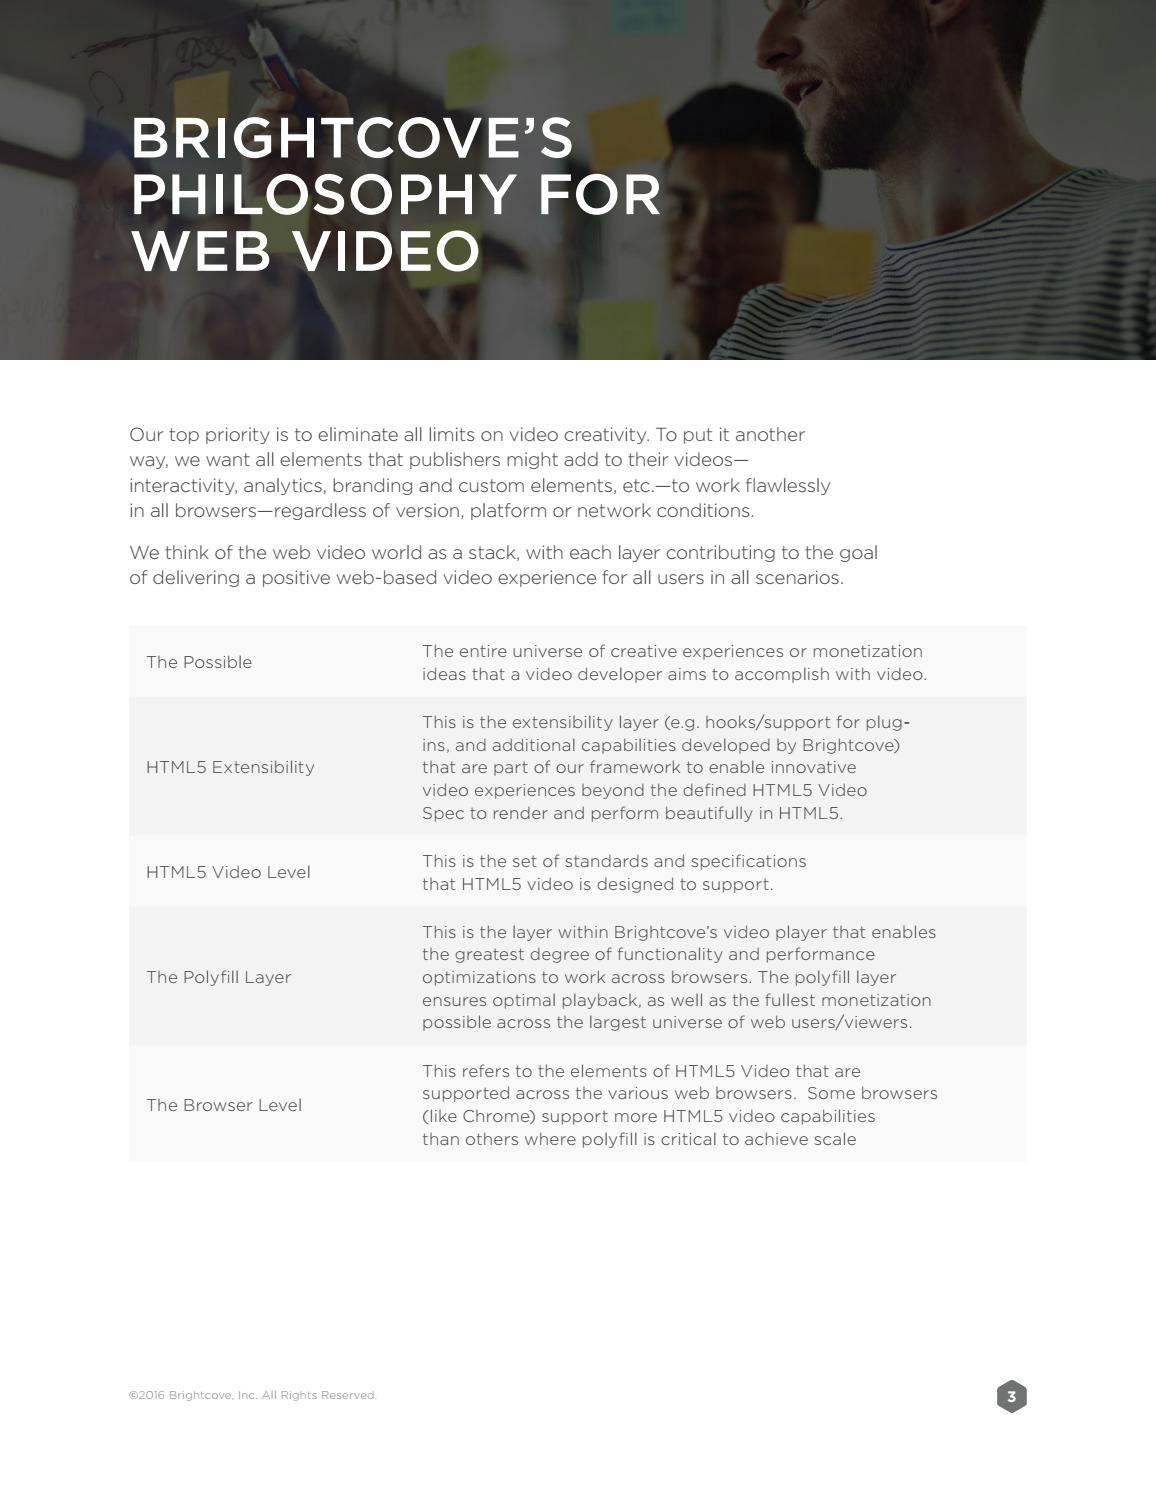 Brightcove White paper - What makes an outstanding video player by